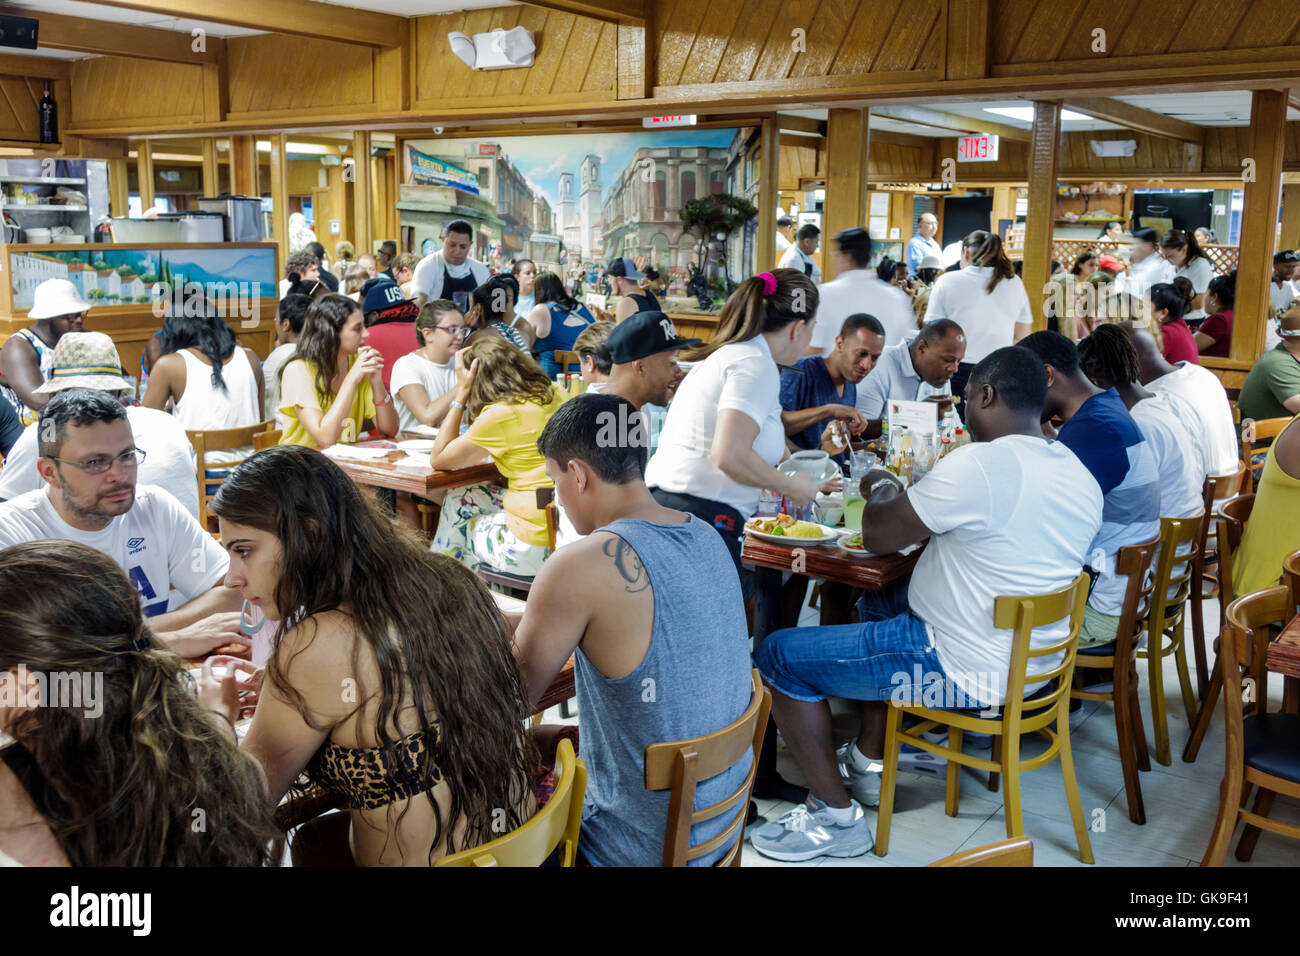 Miami Beach, South Beach Collins Avenue Puerto Sagua Restaurant business Restaurant casual kubanische Küche Ethnic Stockfoto